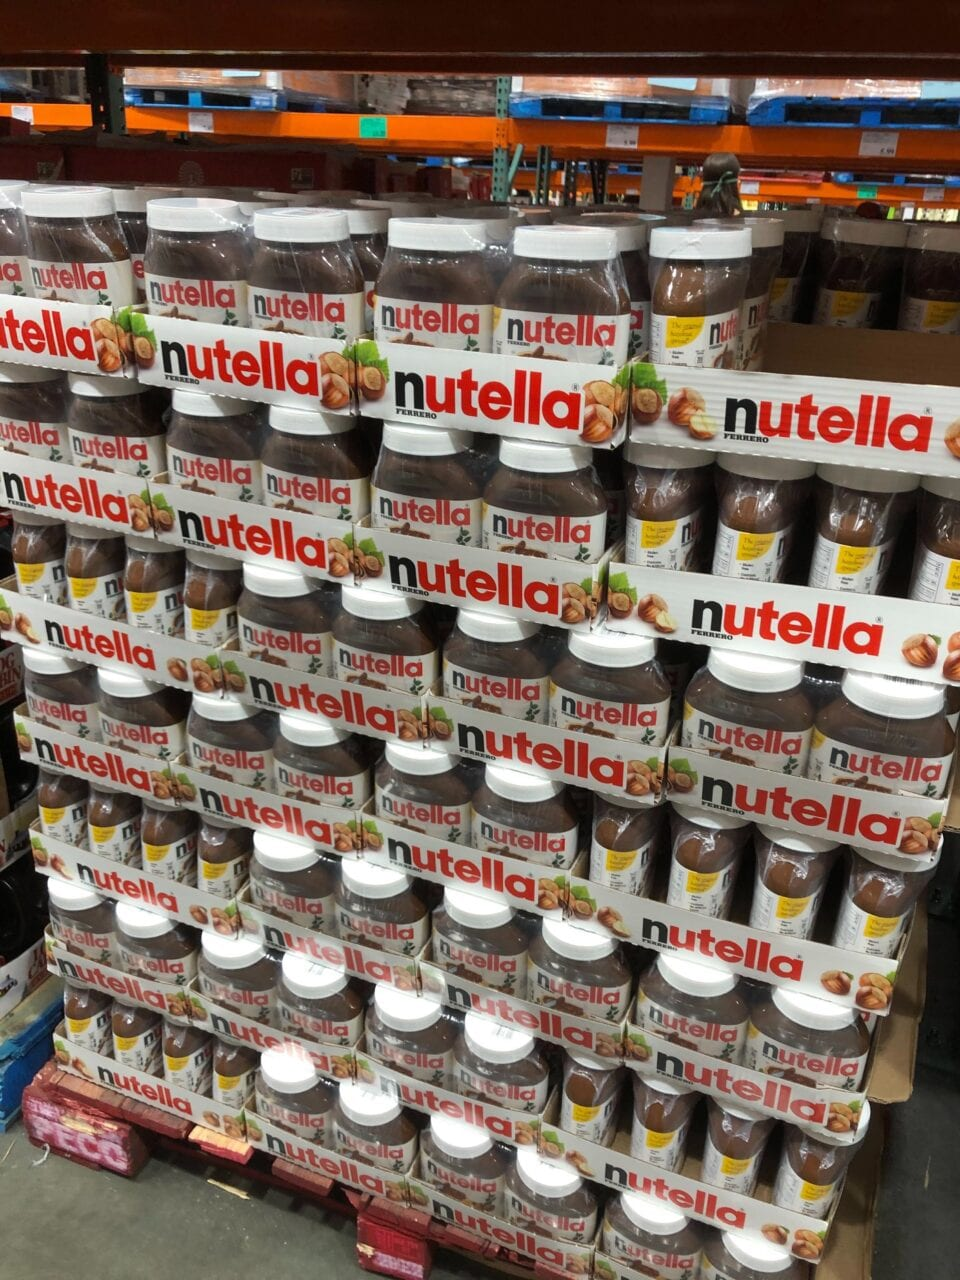 A huge stack of nutella on a pallet at Costco.